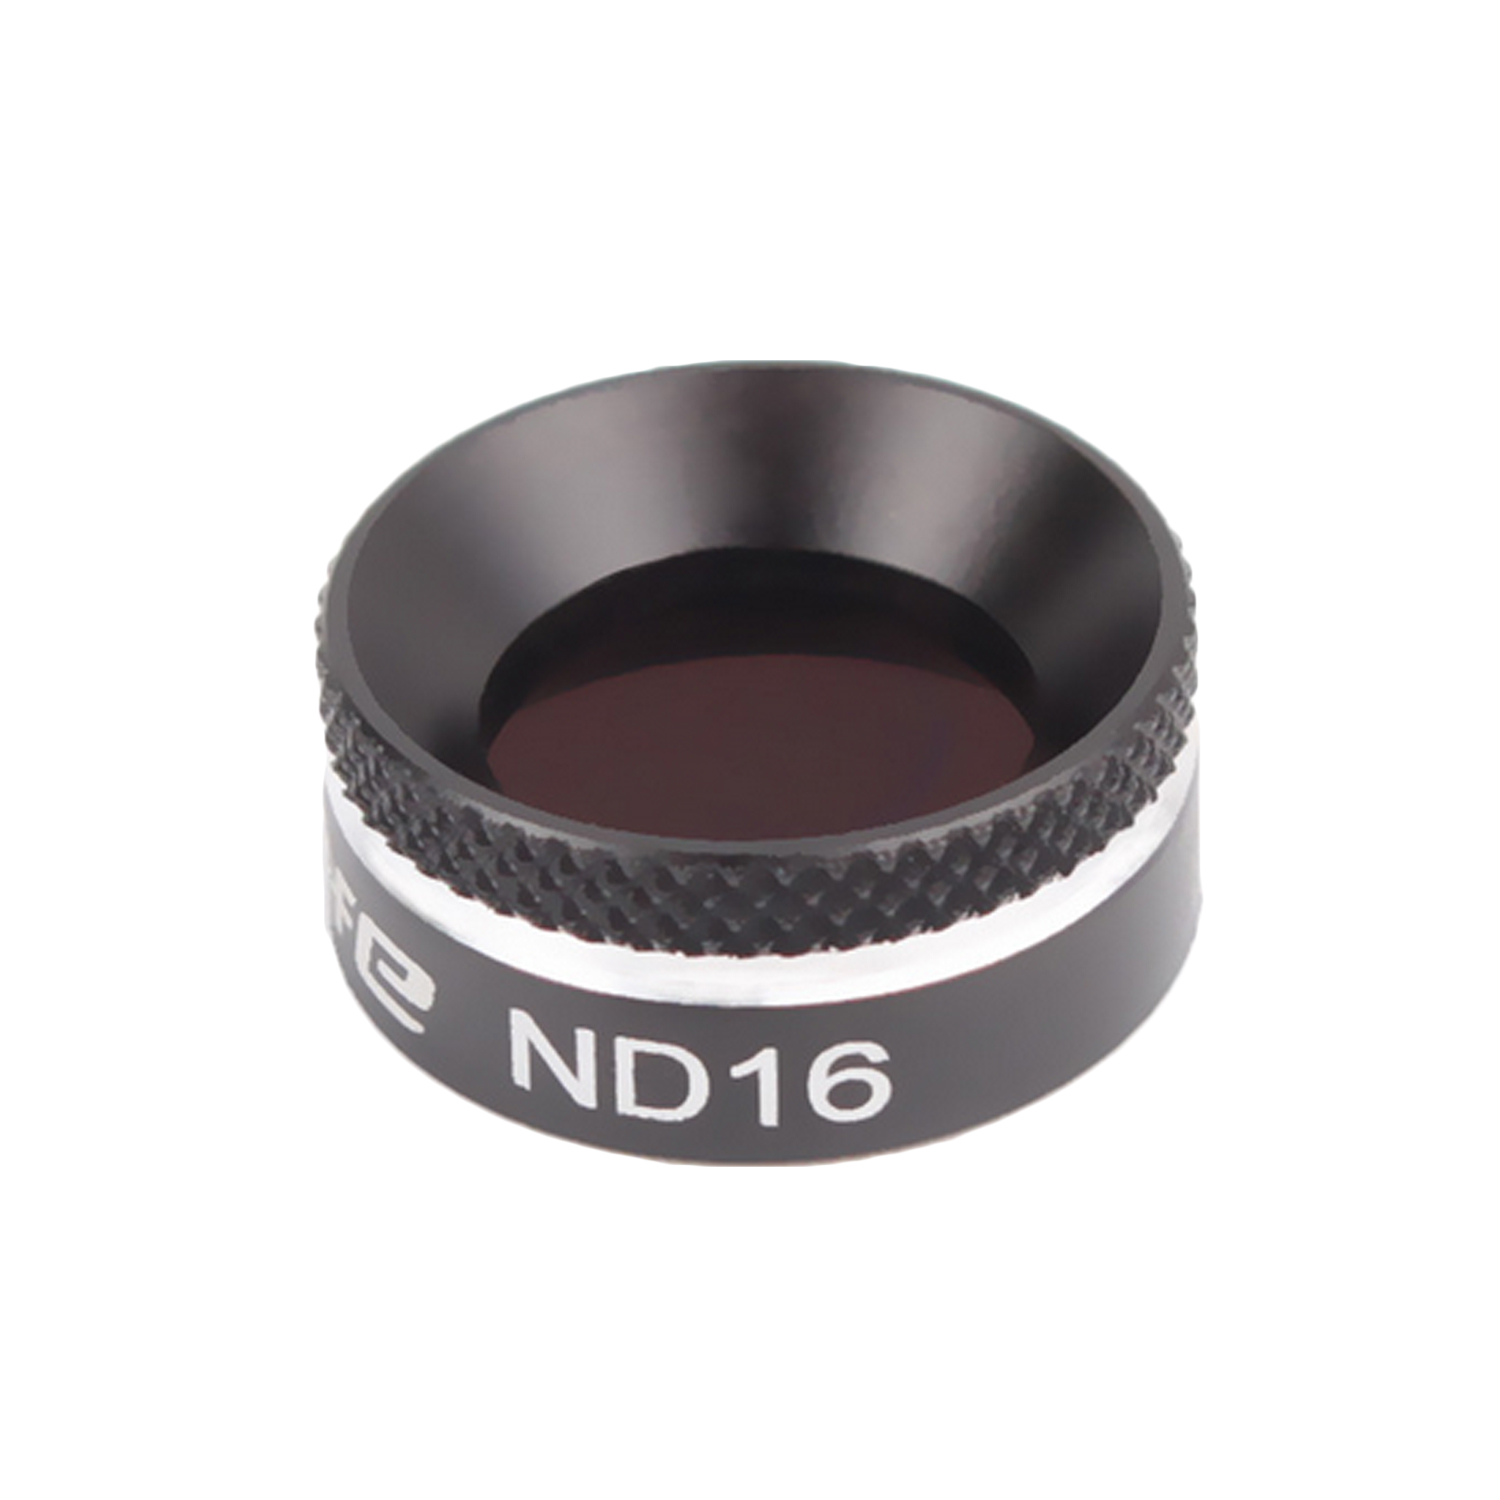 Portable Ultra-thin Multilayer Coating Lens Filters for DJI Mavic Air Drone Camera Accessories ND16 - intl